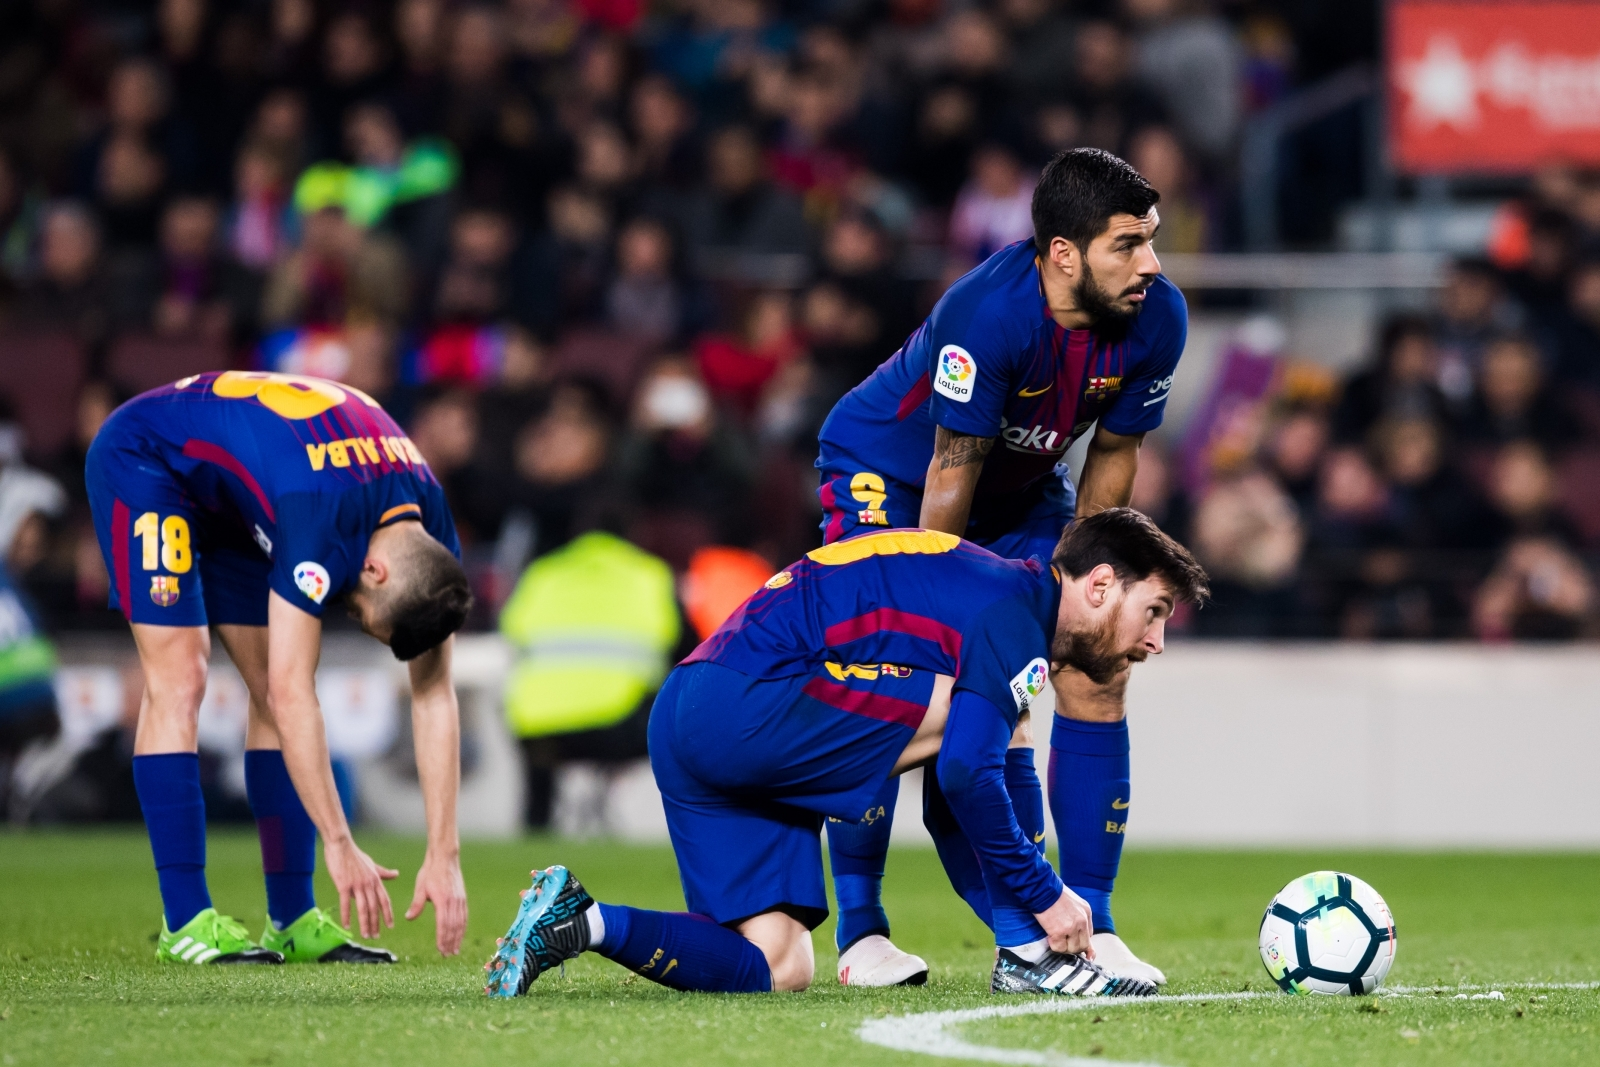 Barcelona's title hopes dented at Las Palmas